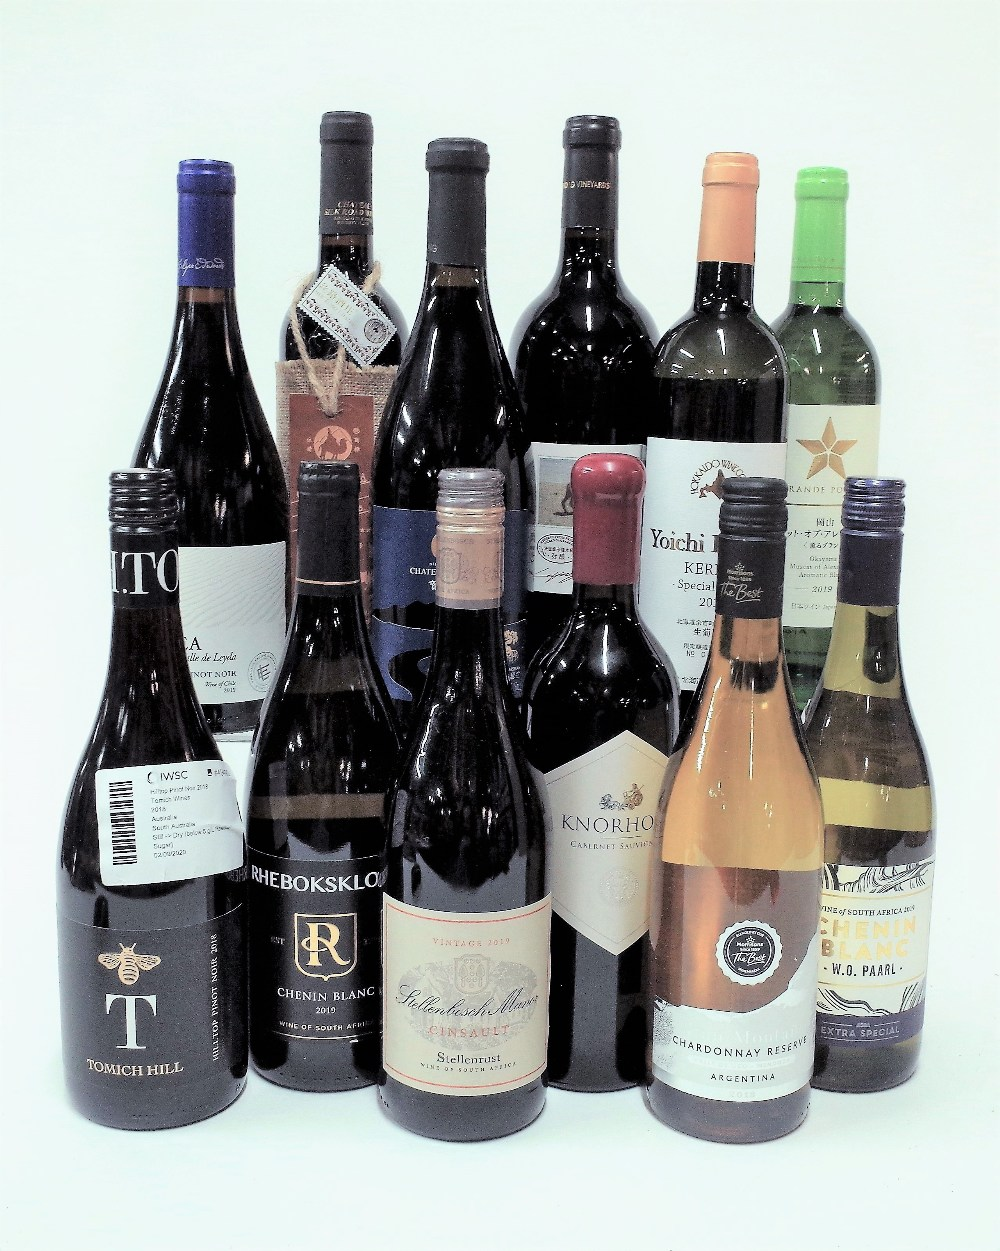 12 BOTTLES MIXED CASE WINES FROM CHINA, SOUTH AFRICA ETC.